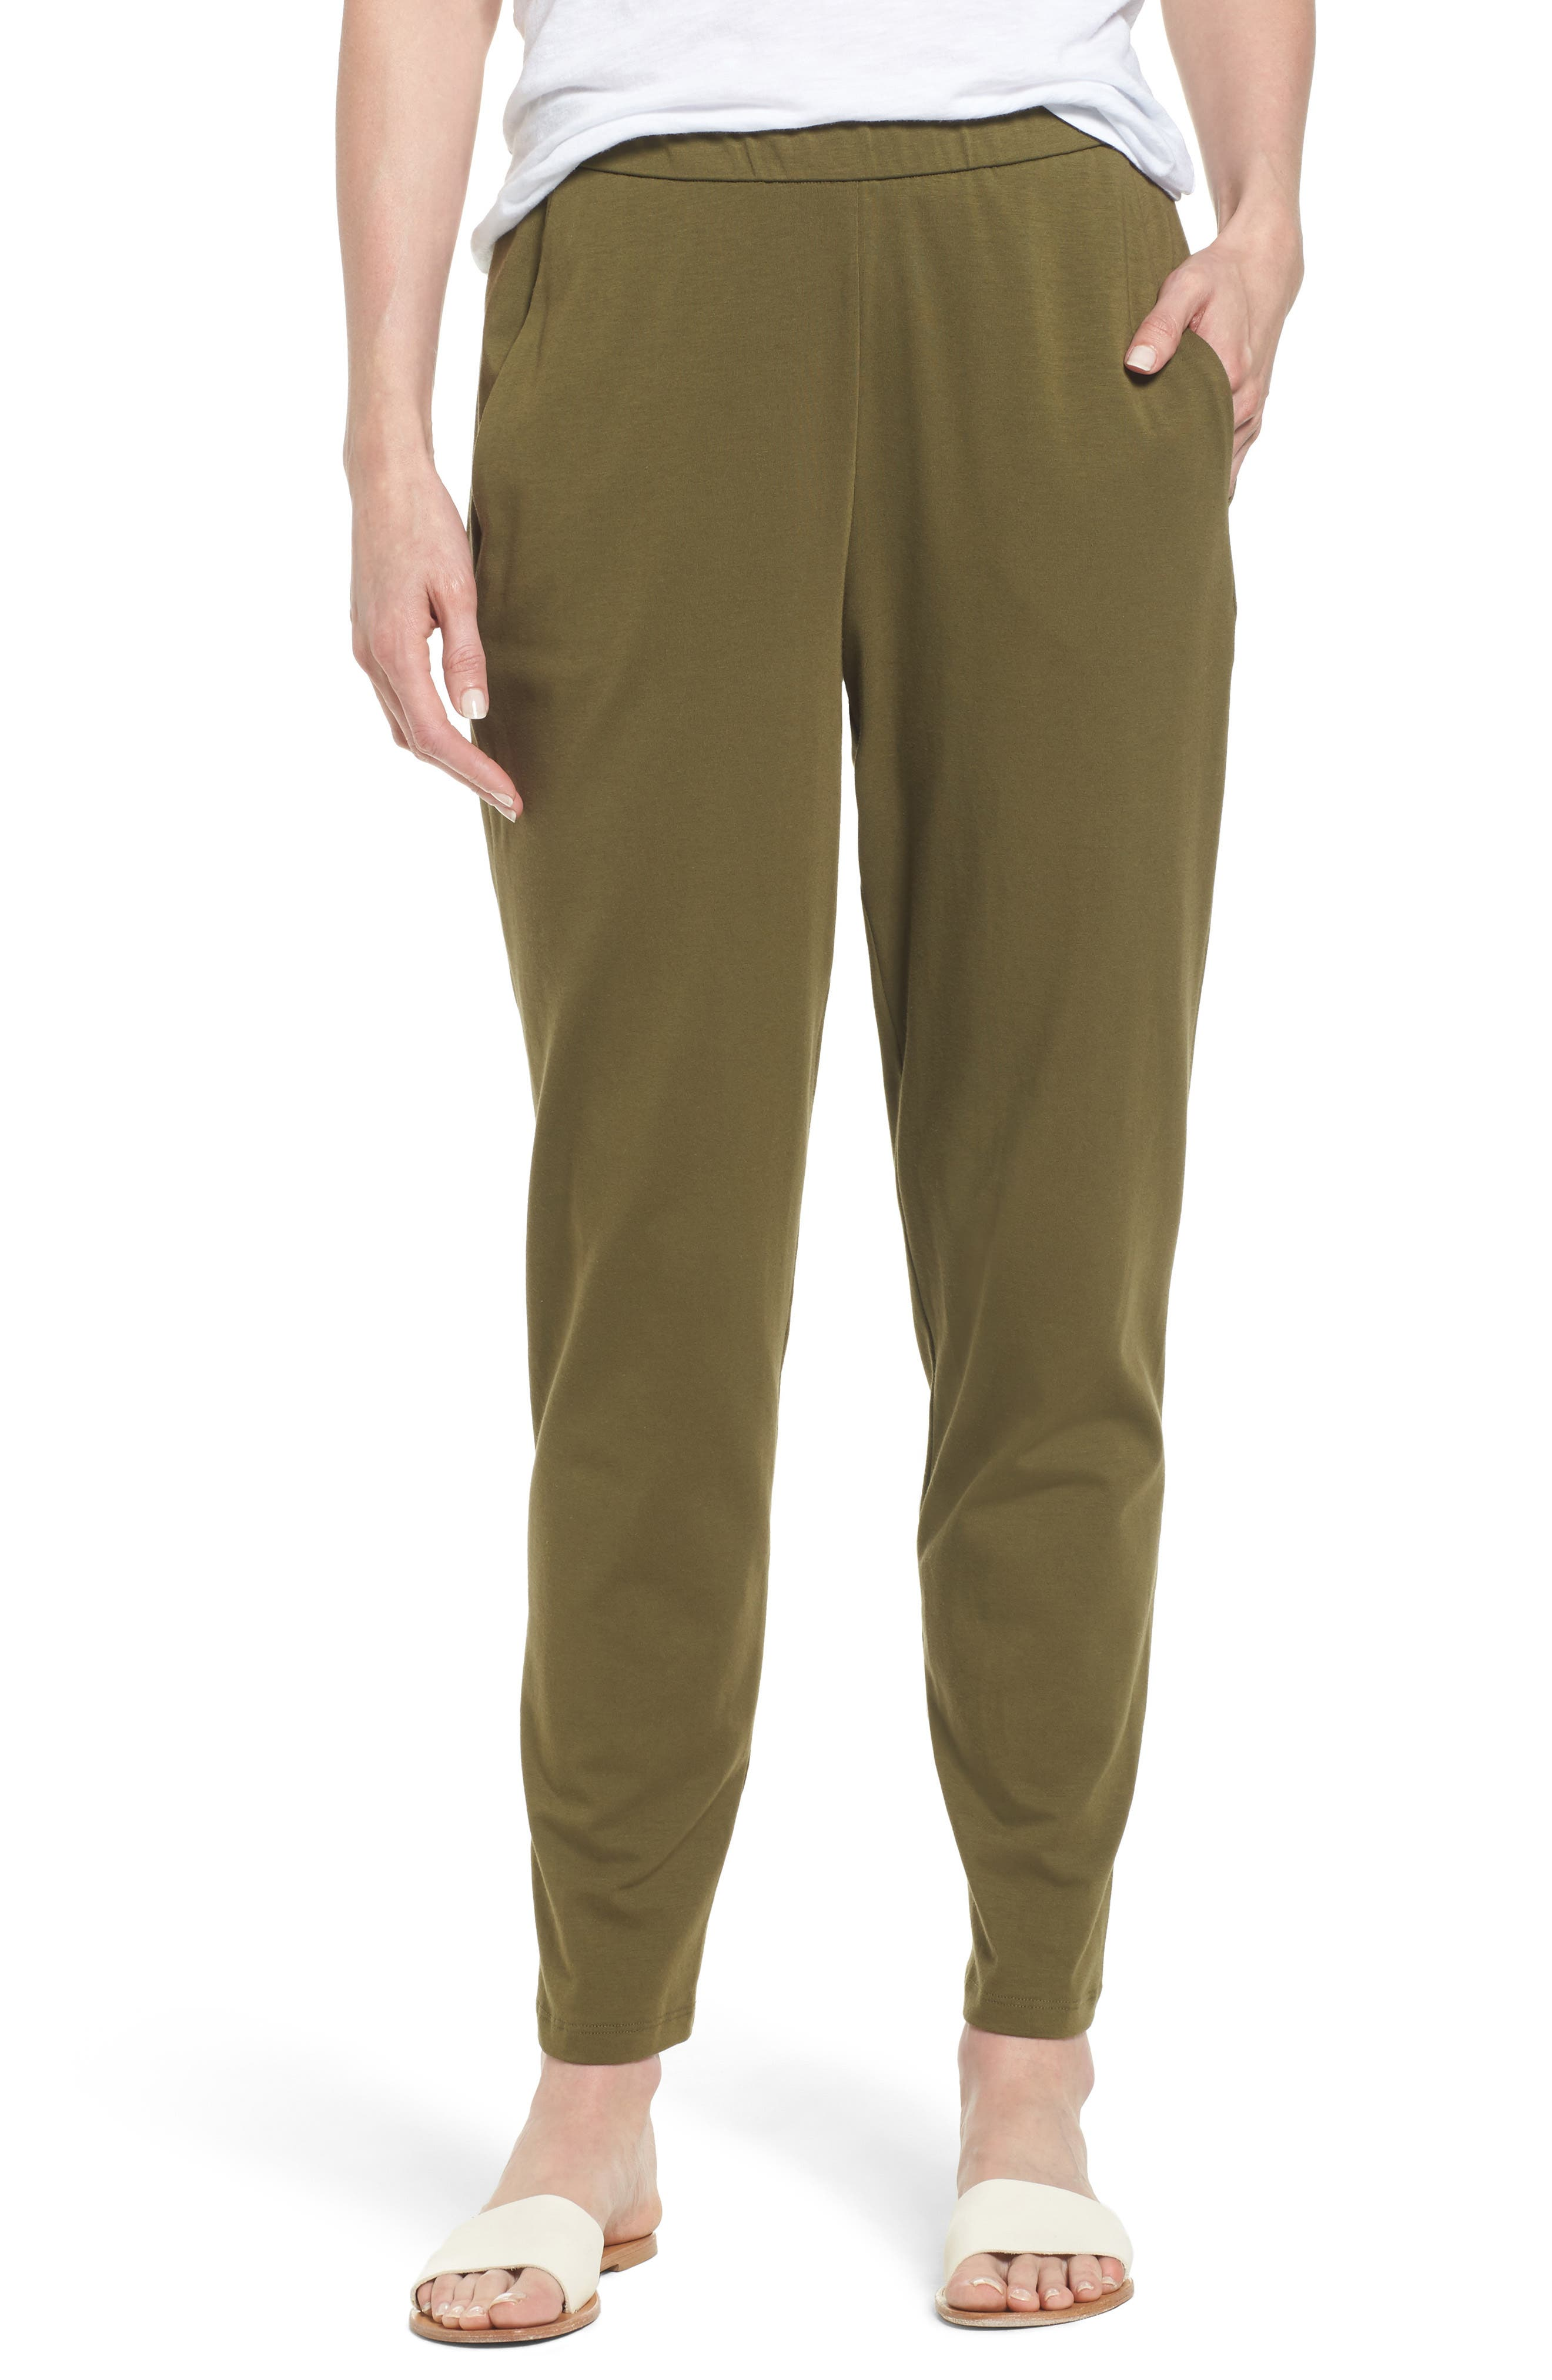 Main Image - Eileen Fisher Stretch Organic Cotton Slim Slouchy Ankle Pants (Regular & Petite)